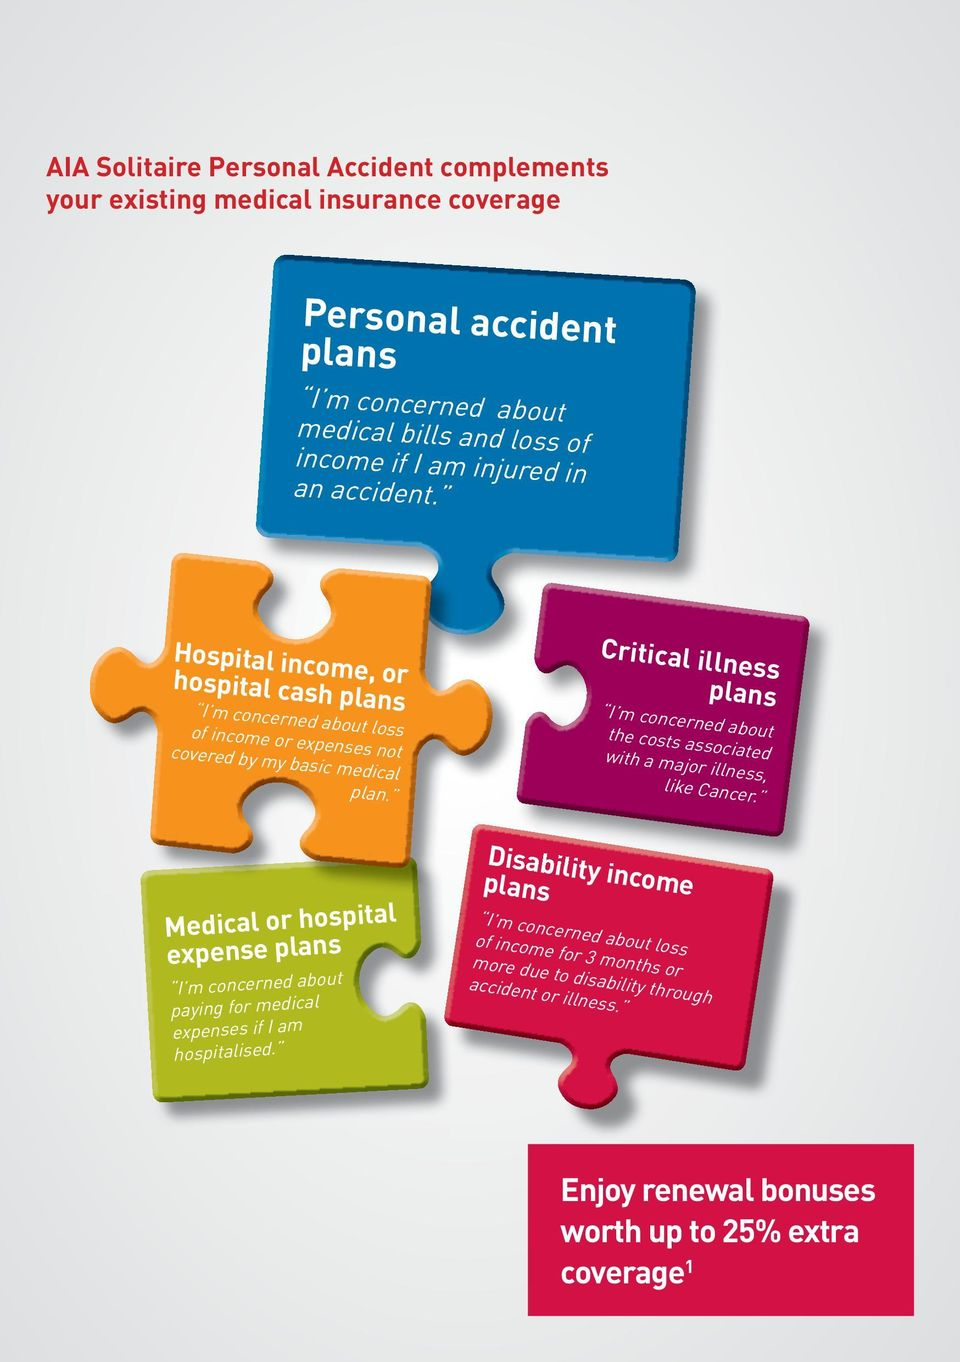 Critical illness plans I m concerned about the costs associated with a major illness, like Cancer.